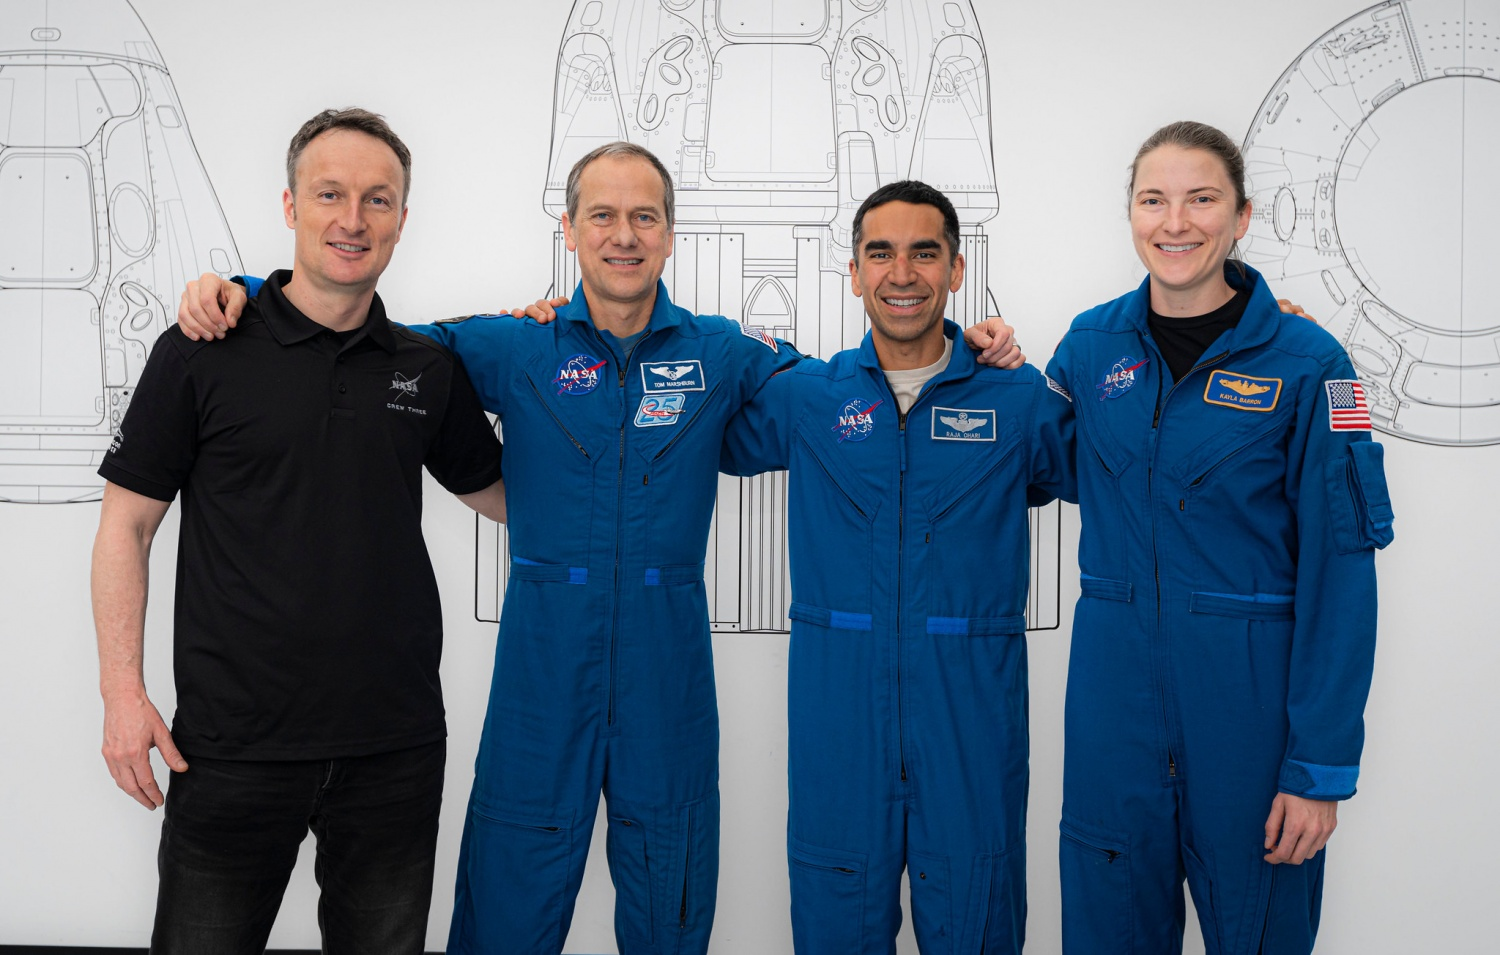 SpaceX's Crew-3 Mission Astronauts